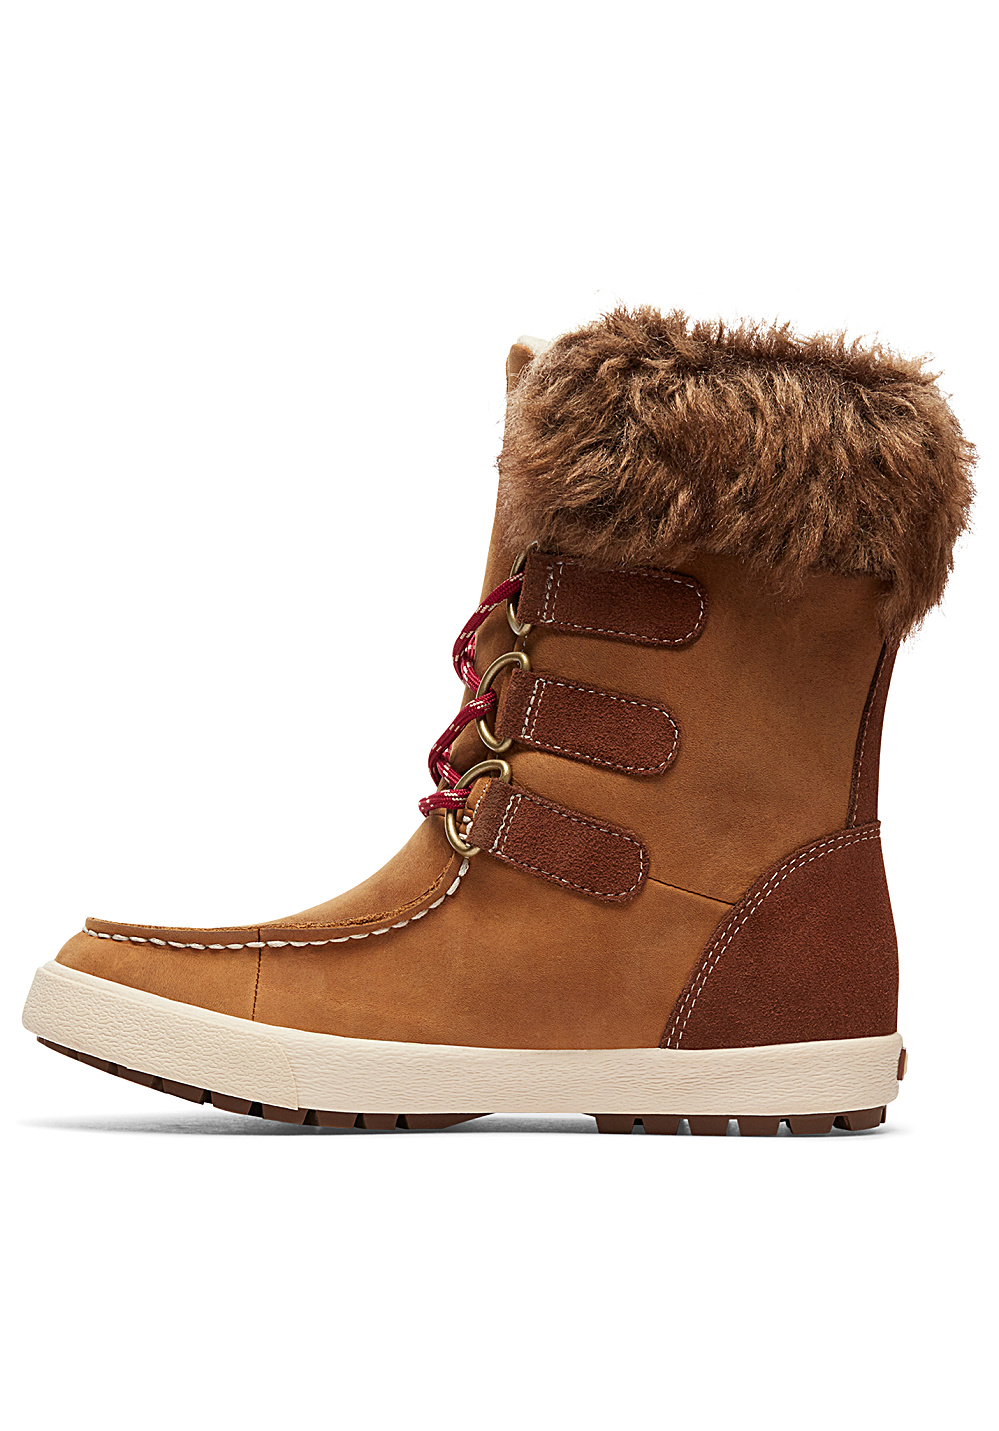 Marron Femme Roxy Pour Bottines Rainier thQdBsrCx